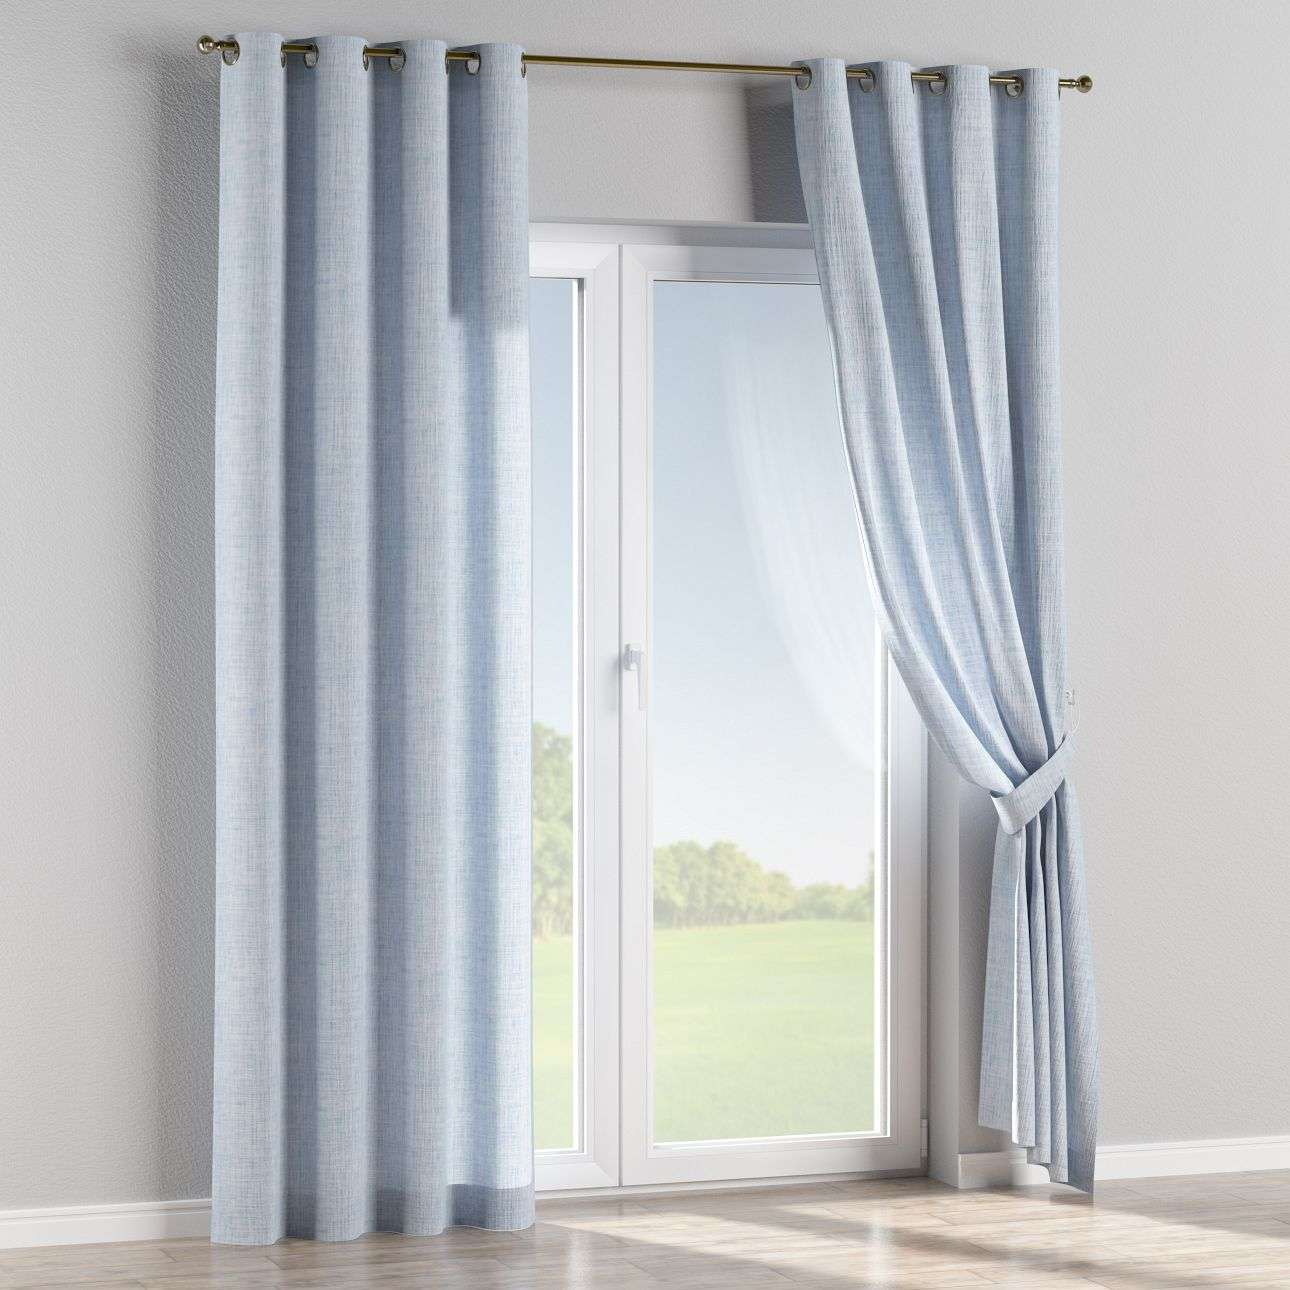 Eyelet curtains 130 x 260 cm (51 x 102 inch) in collection Aquarelle, fabric: 140-74